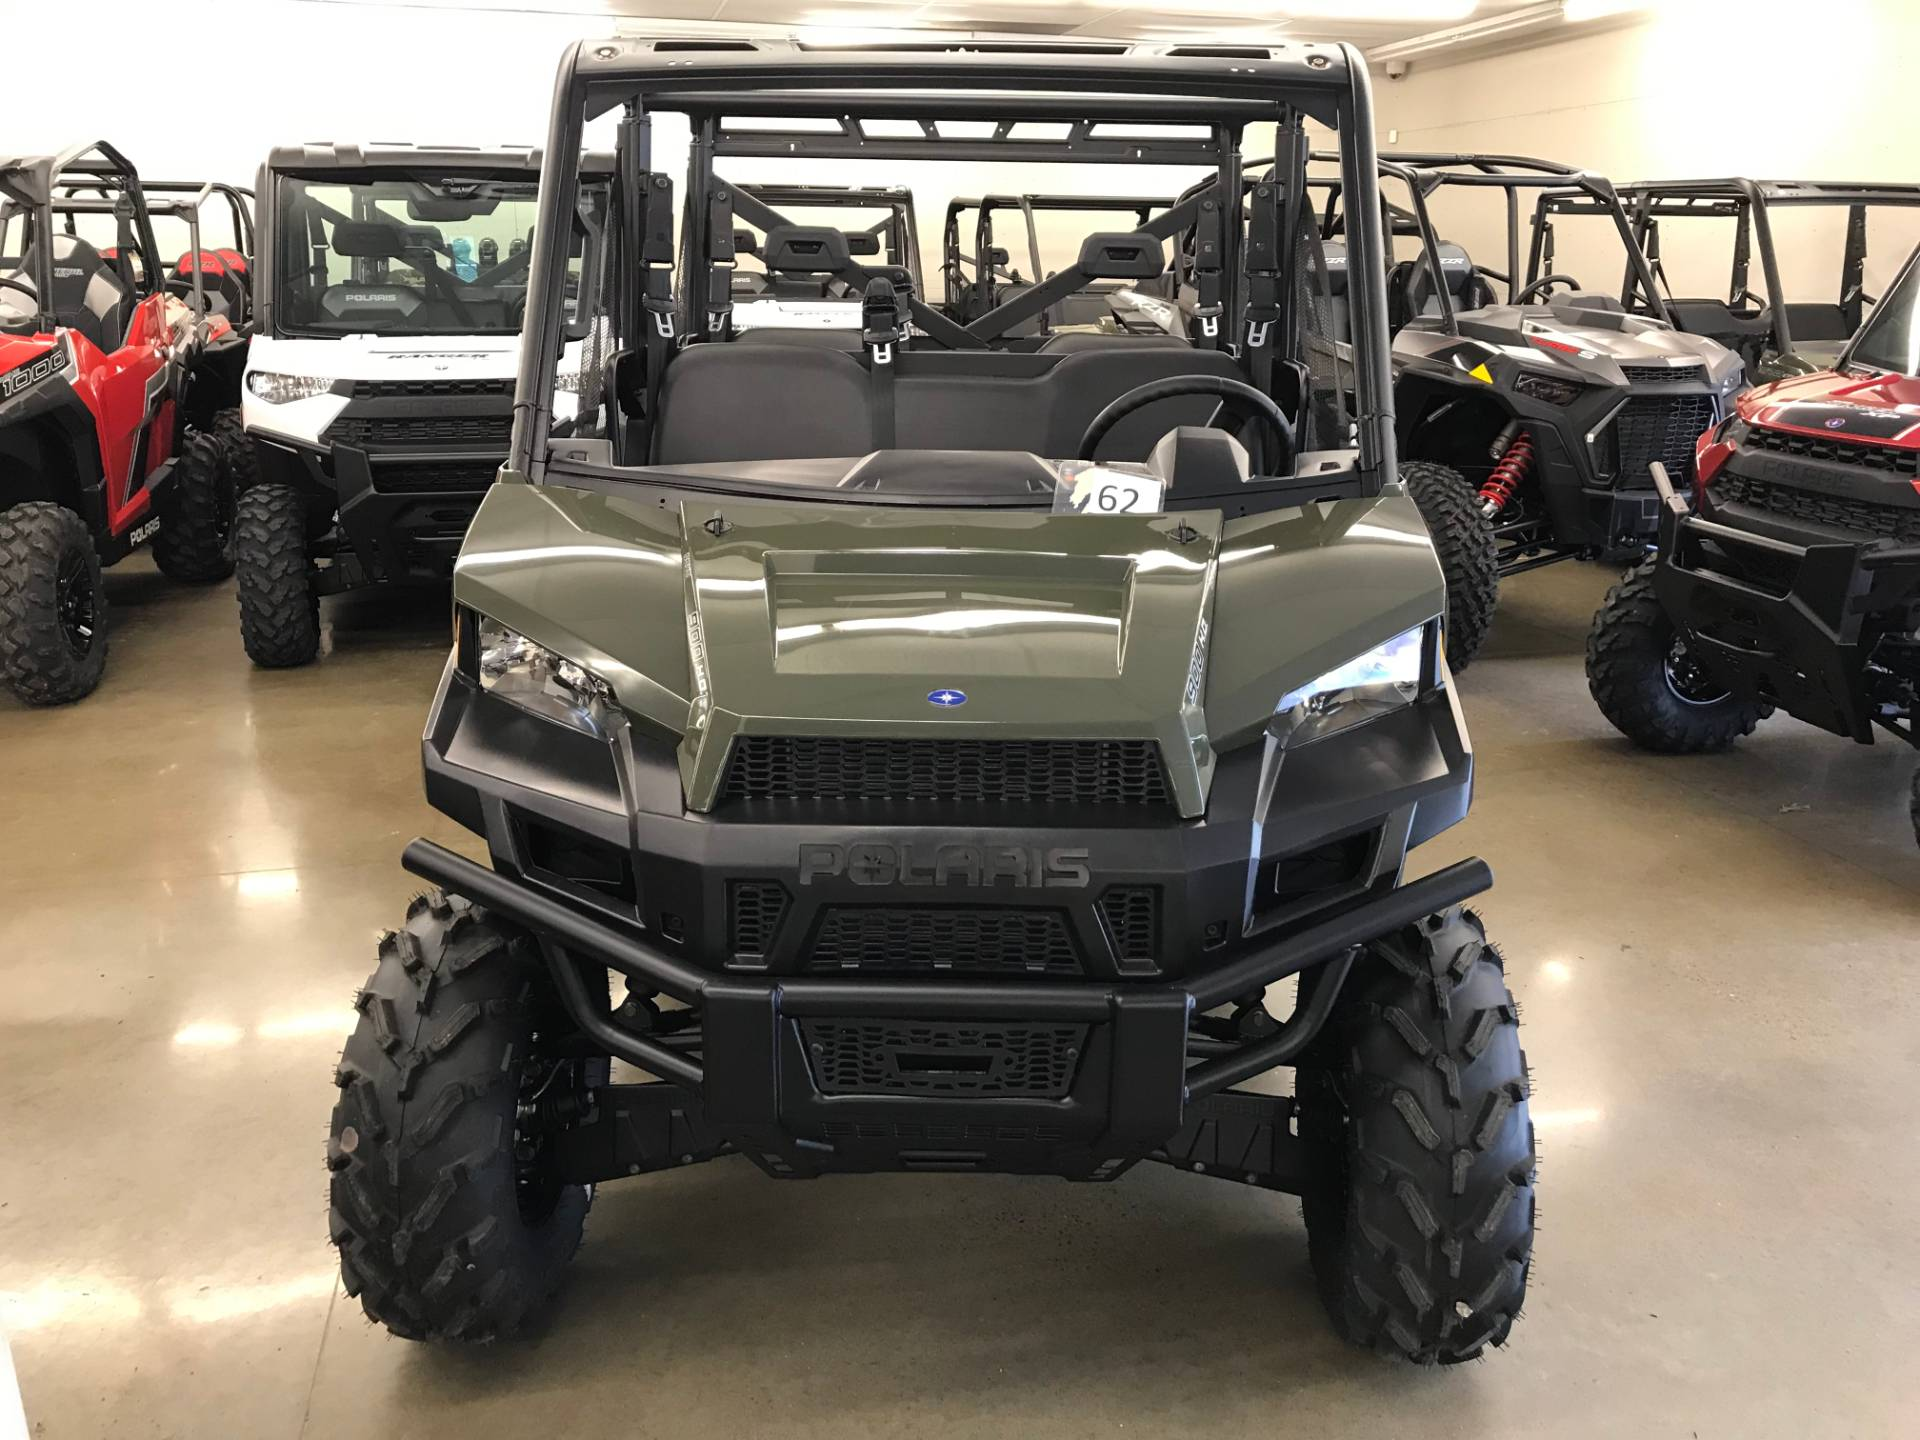 2019 Polaris Ranger Crew XP 900 in Chicora, Pennsylvania - Photo 6